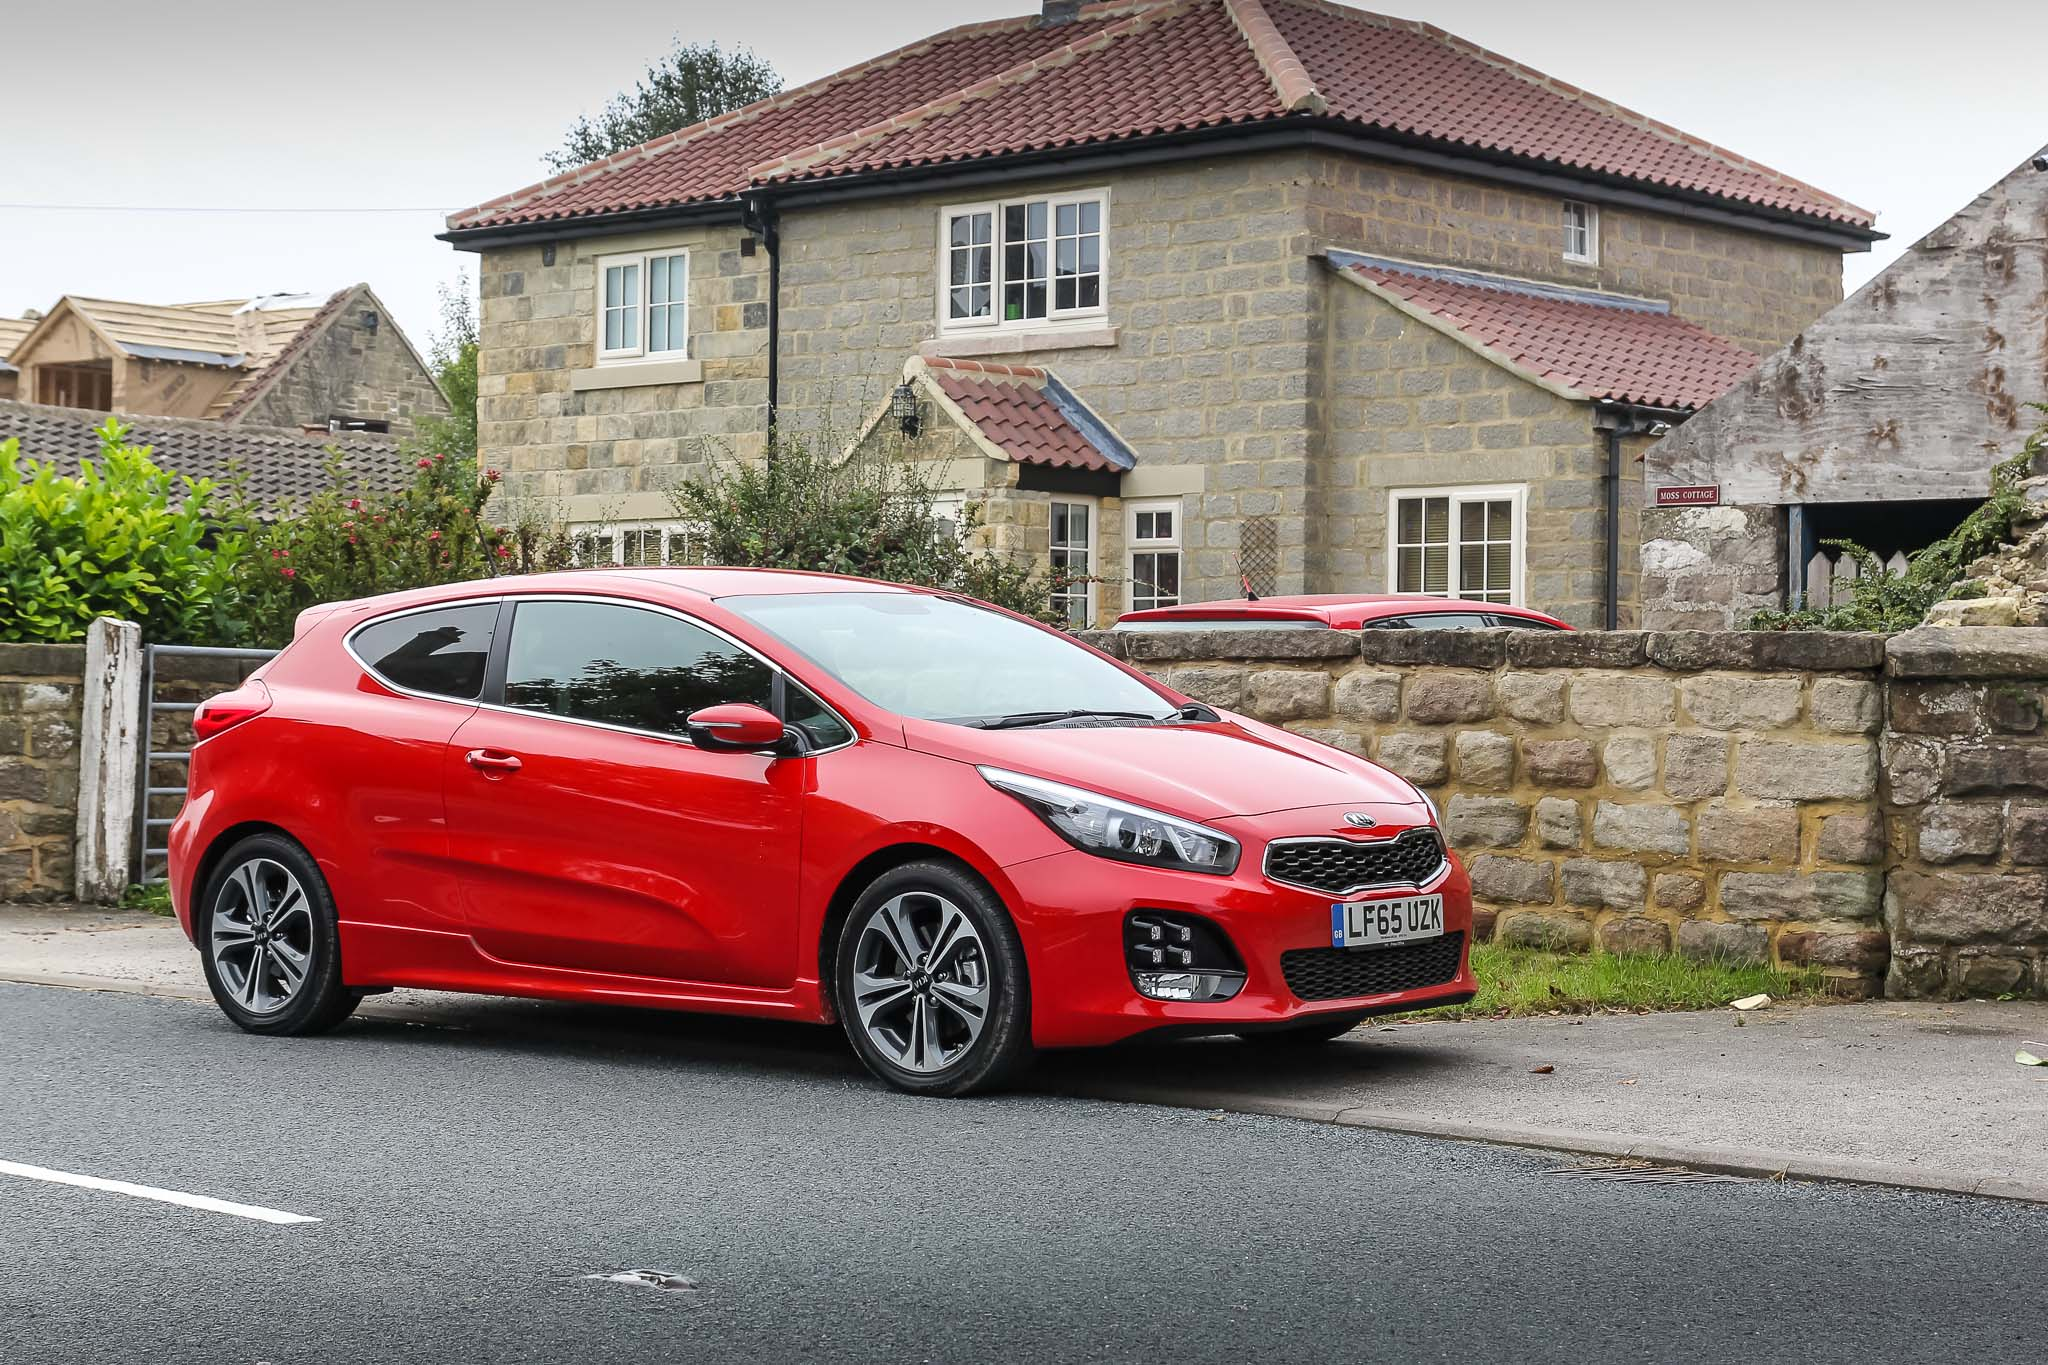 kia pro ceed gt line review 1 0 litre 118bhp 171nm off torque. Black Bedroom Furniture Sets. Home Design Ideas